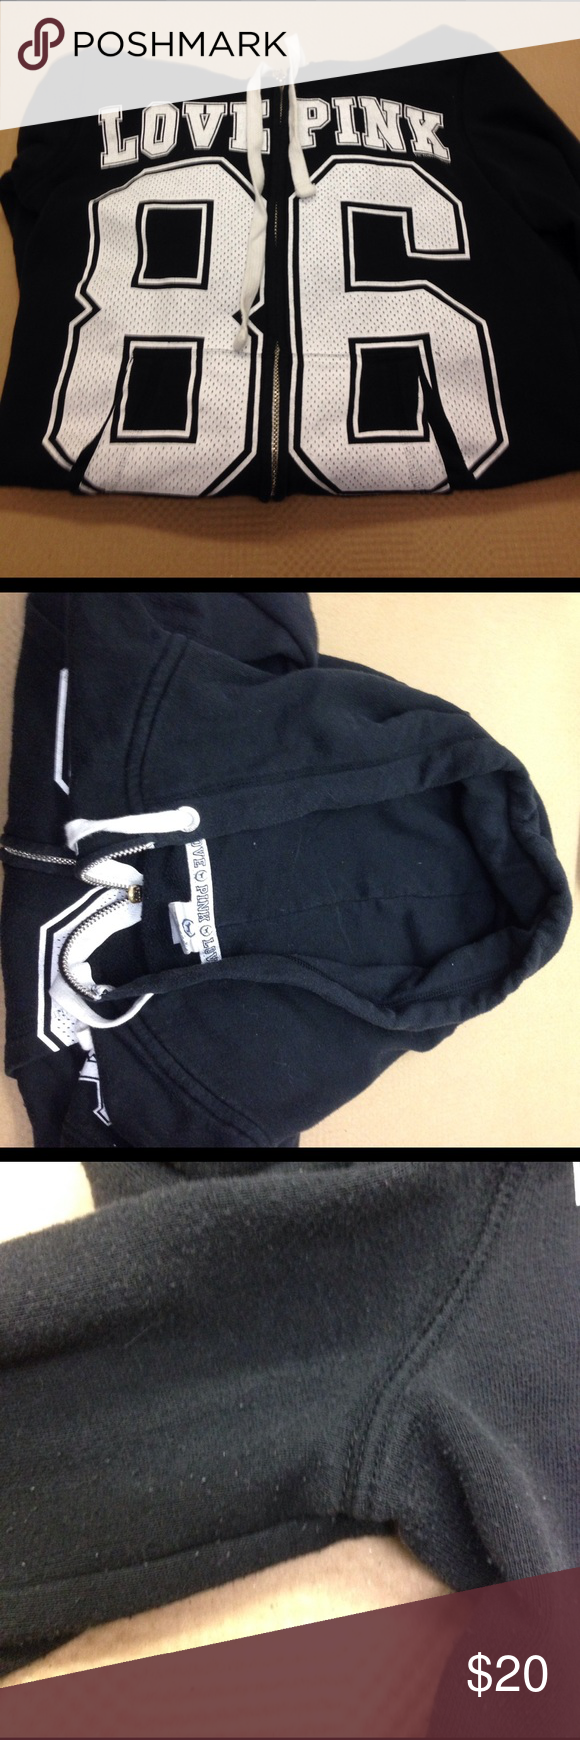 PINK Victoria's Secret 86 black hoodie Silght pulling but not much. Otherwise in good condition. Size XS PINK Victoria's Secret Tops Sweatshirts & Hoodies